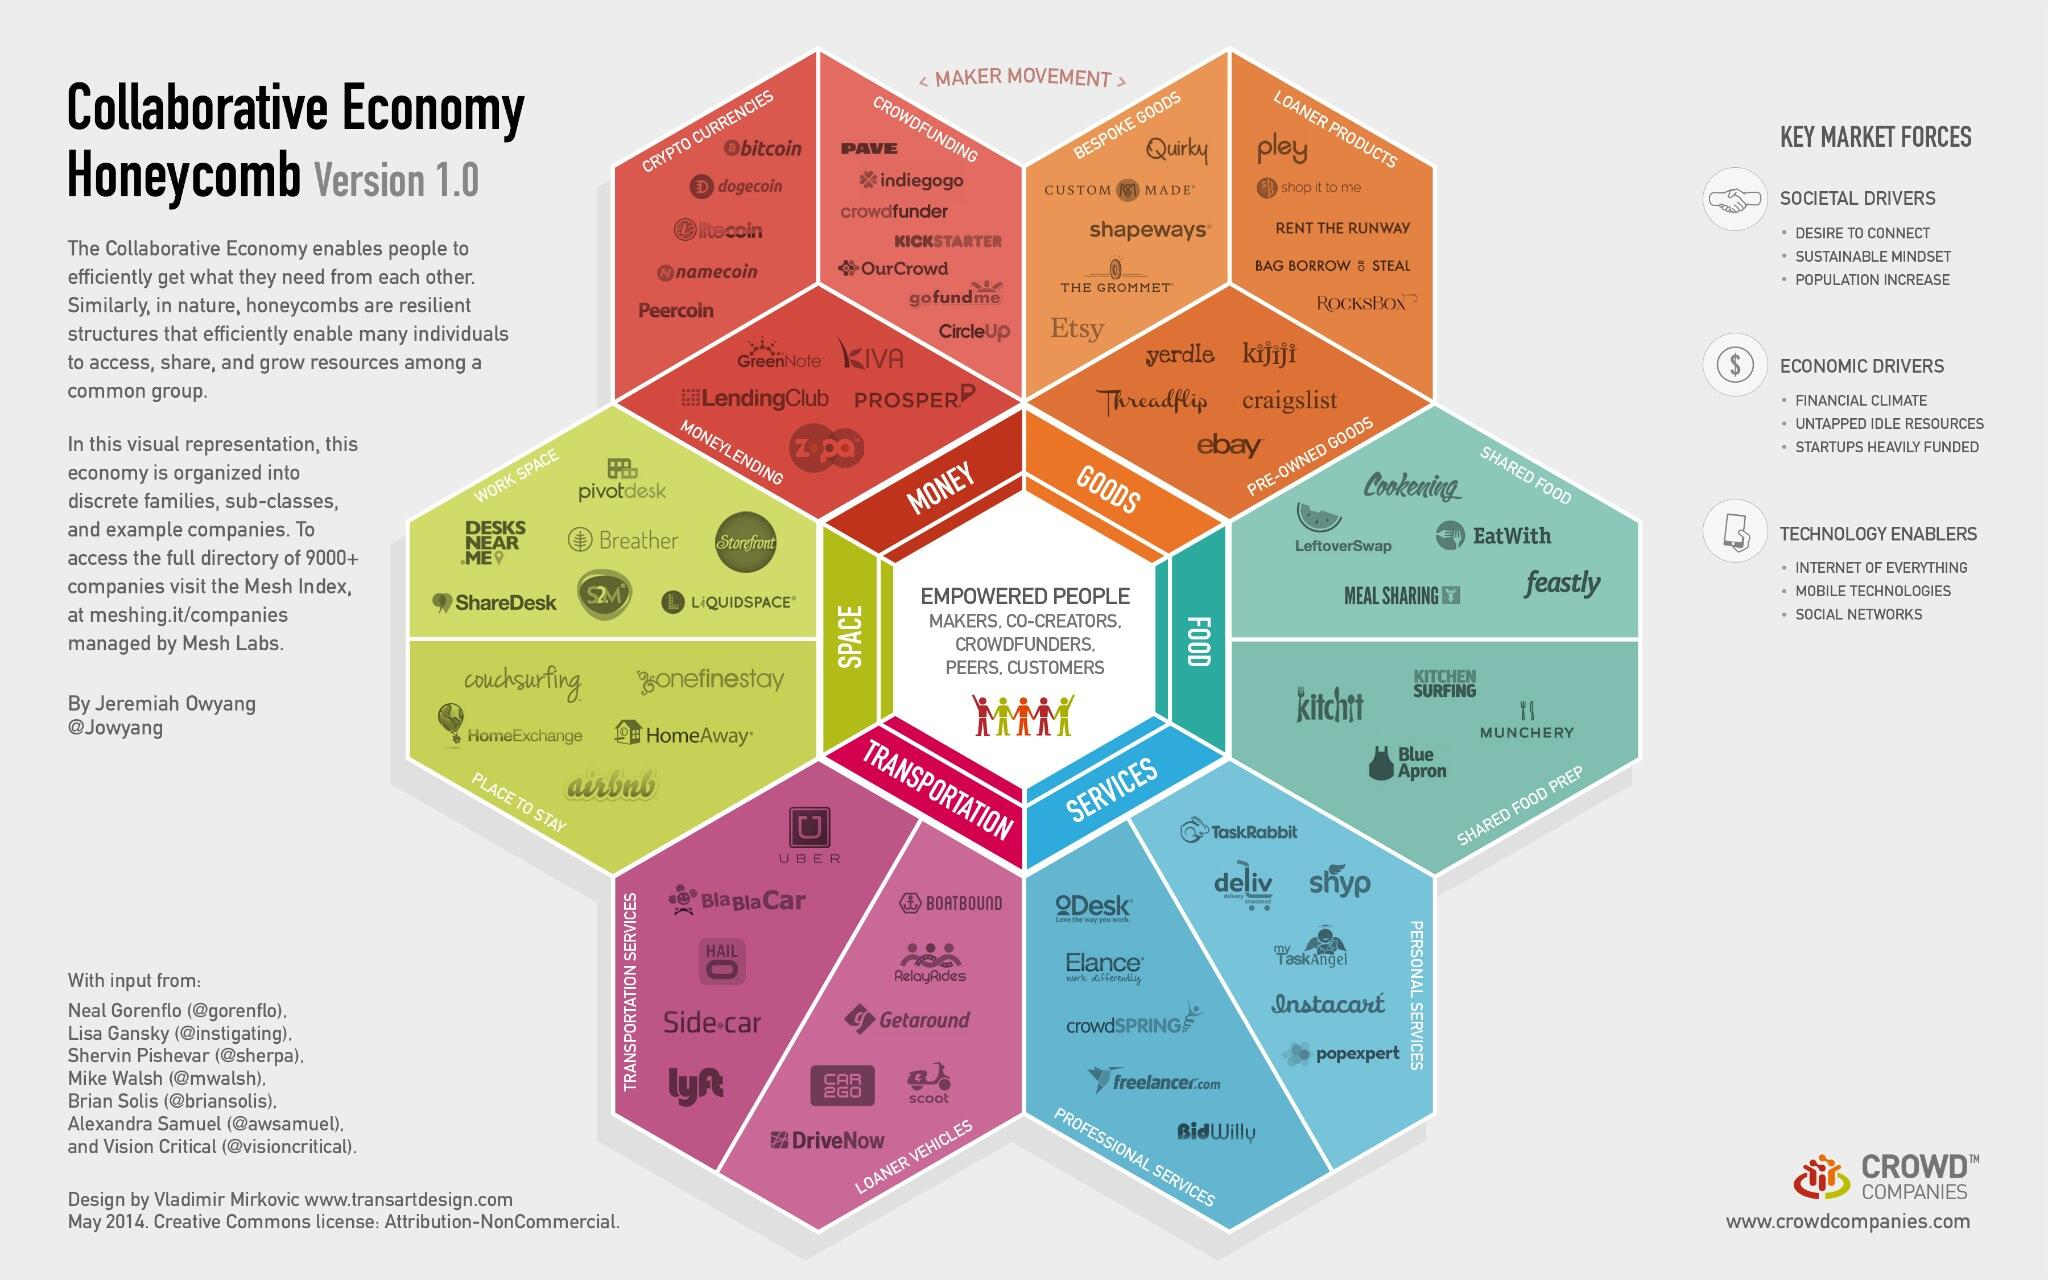 Twitter / jowyang: The Collaborative Economy ...